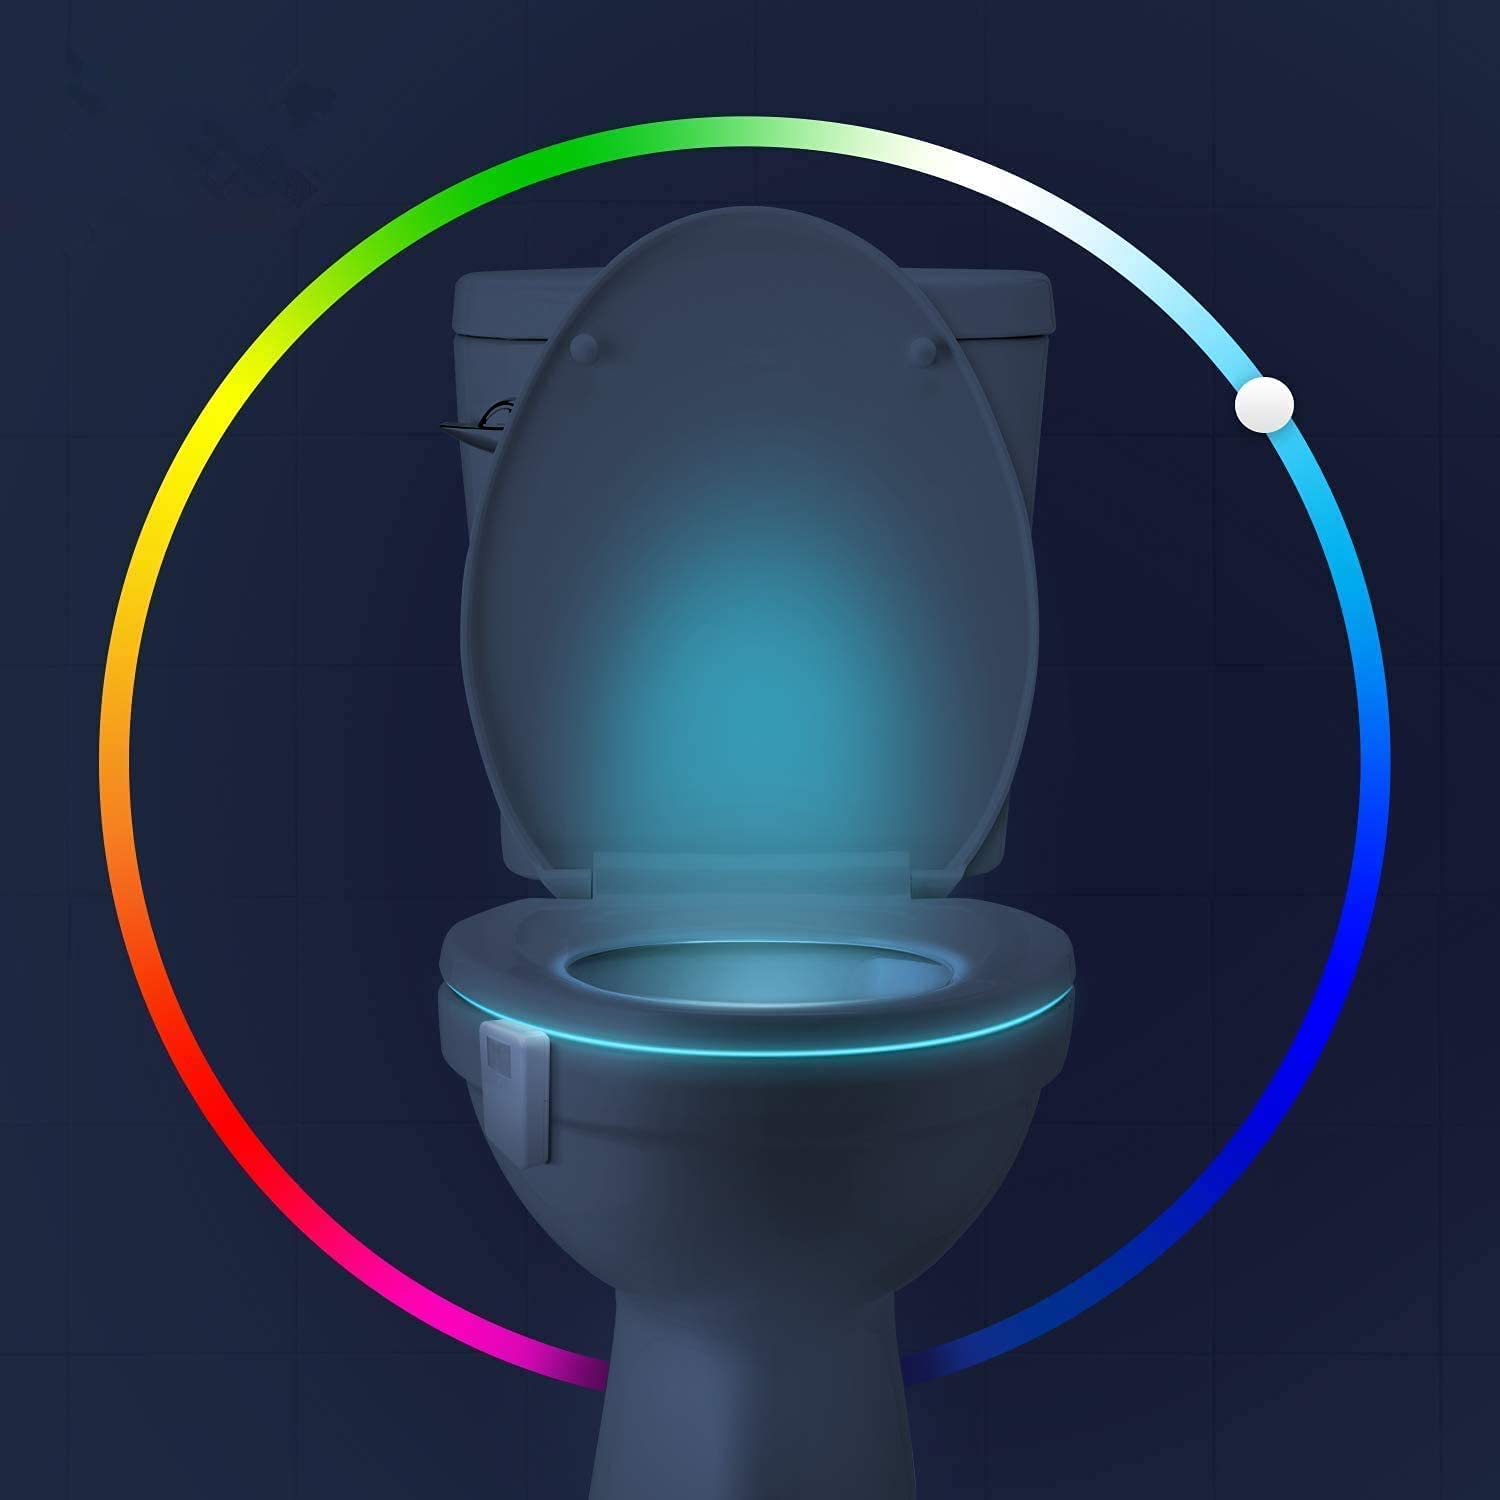 Aomofun Toilet Night Light, 16 Color Changing LED Nightlight with Motion Activated Sensor, Funny Bathroom Decorating Gadget for Men Fathers Day - NoveltyGag Stocking Stuffers